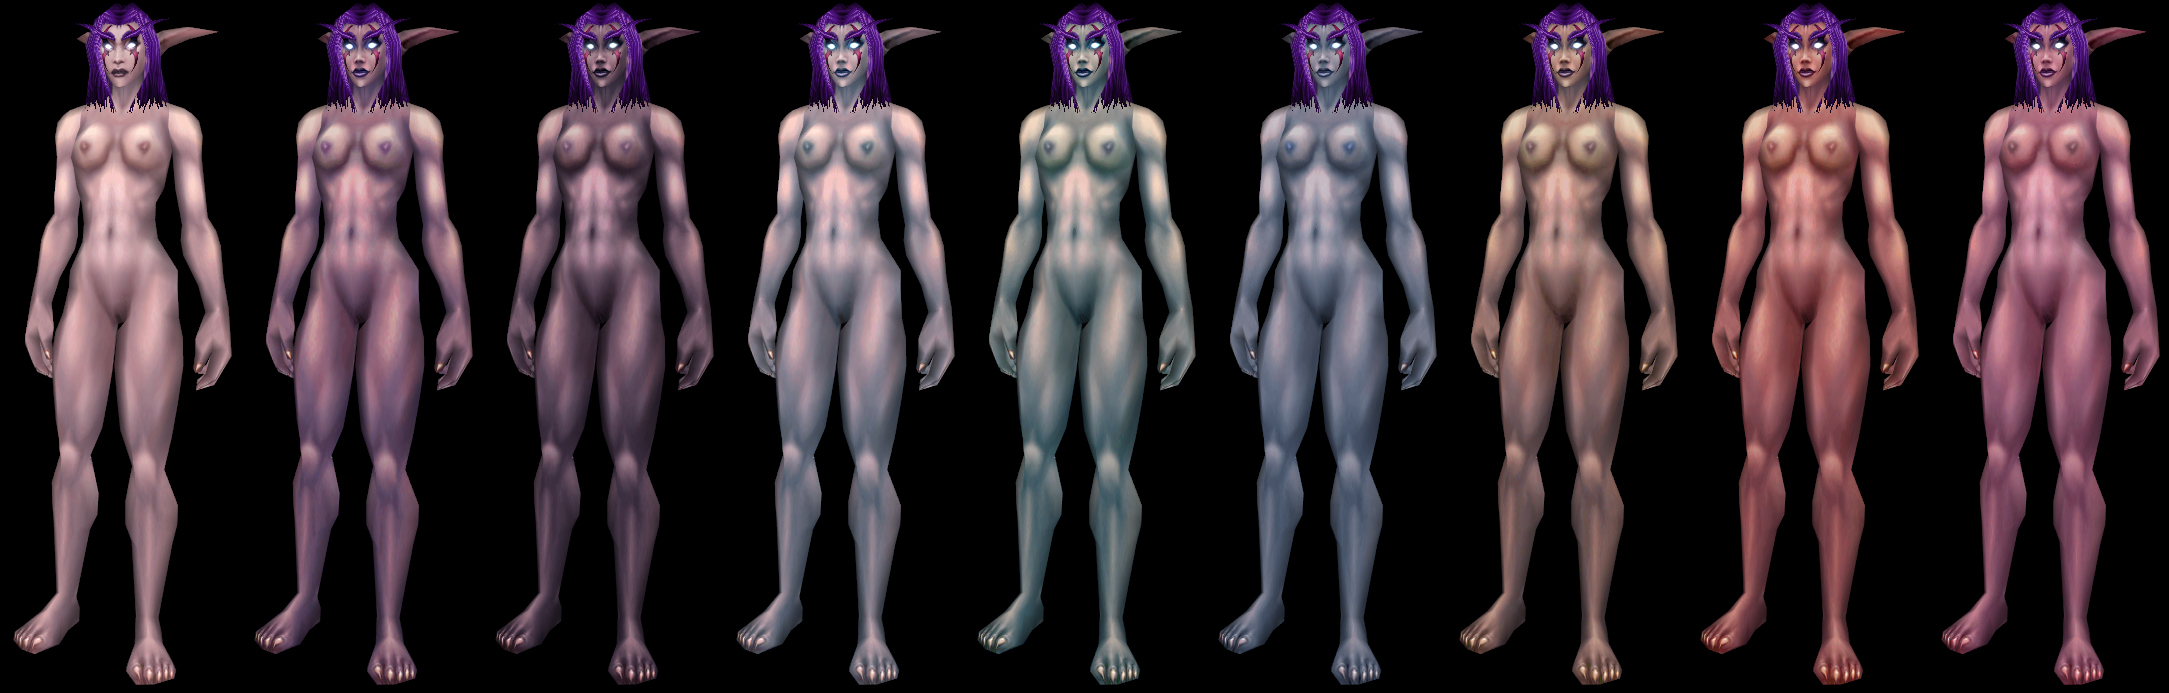 Night elf female naked nackt image